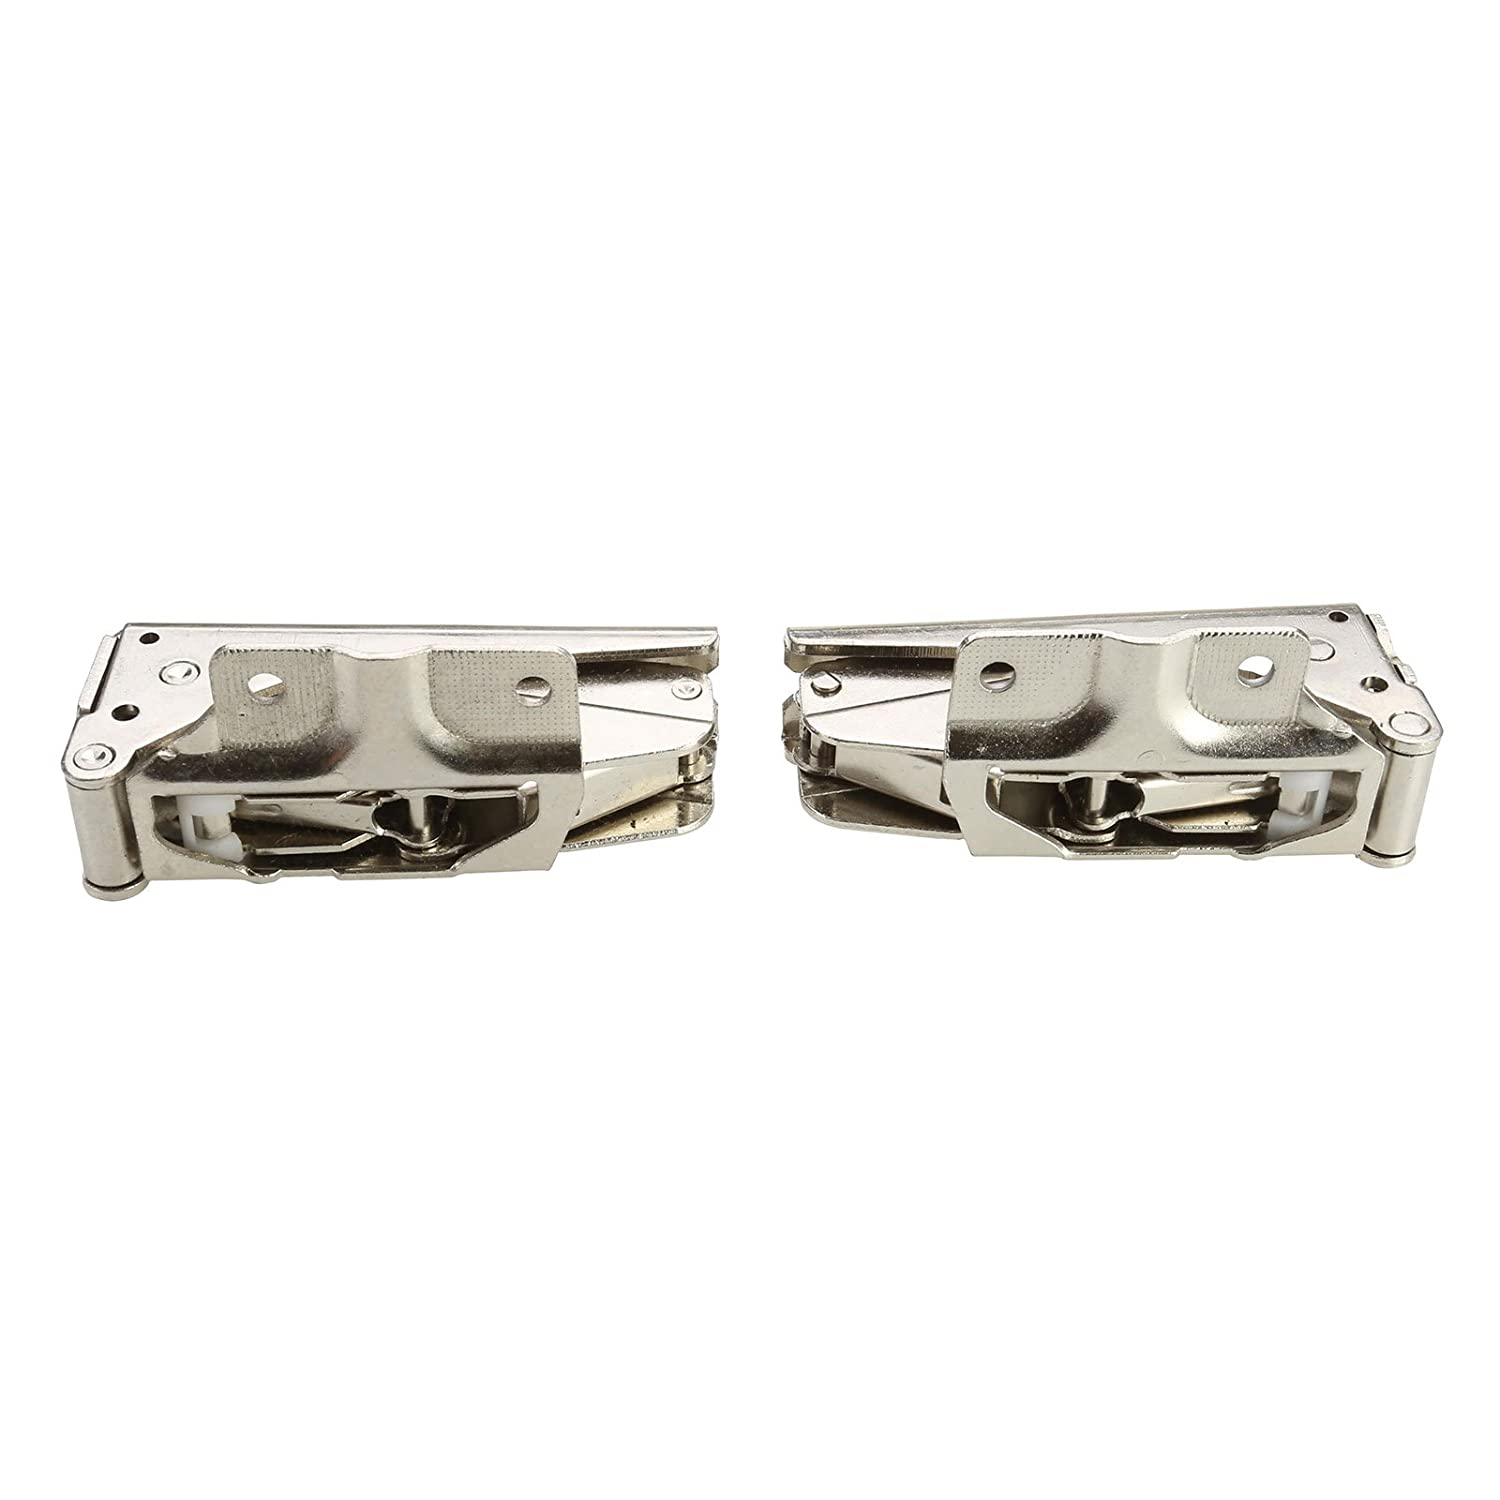 First4Spares Universal Door Hinges for Integrated Fridge Freezers (Complete pair)